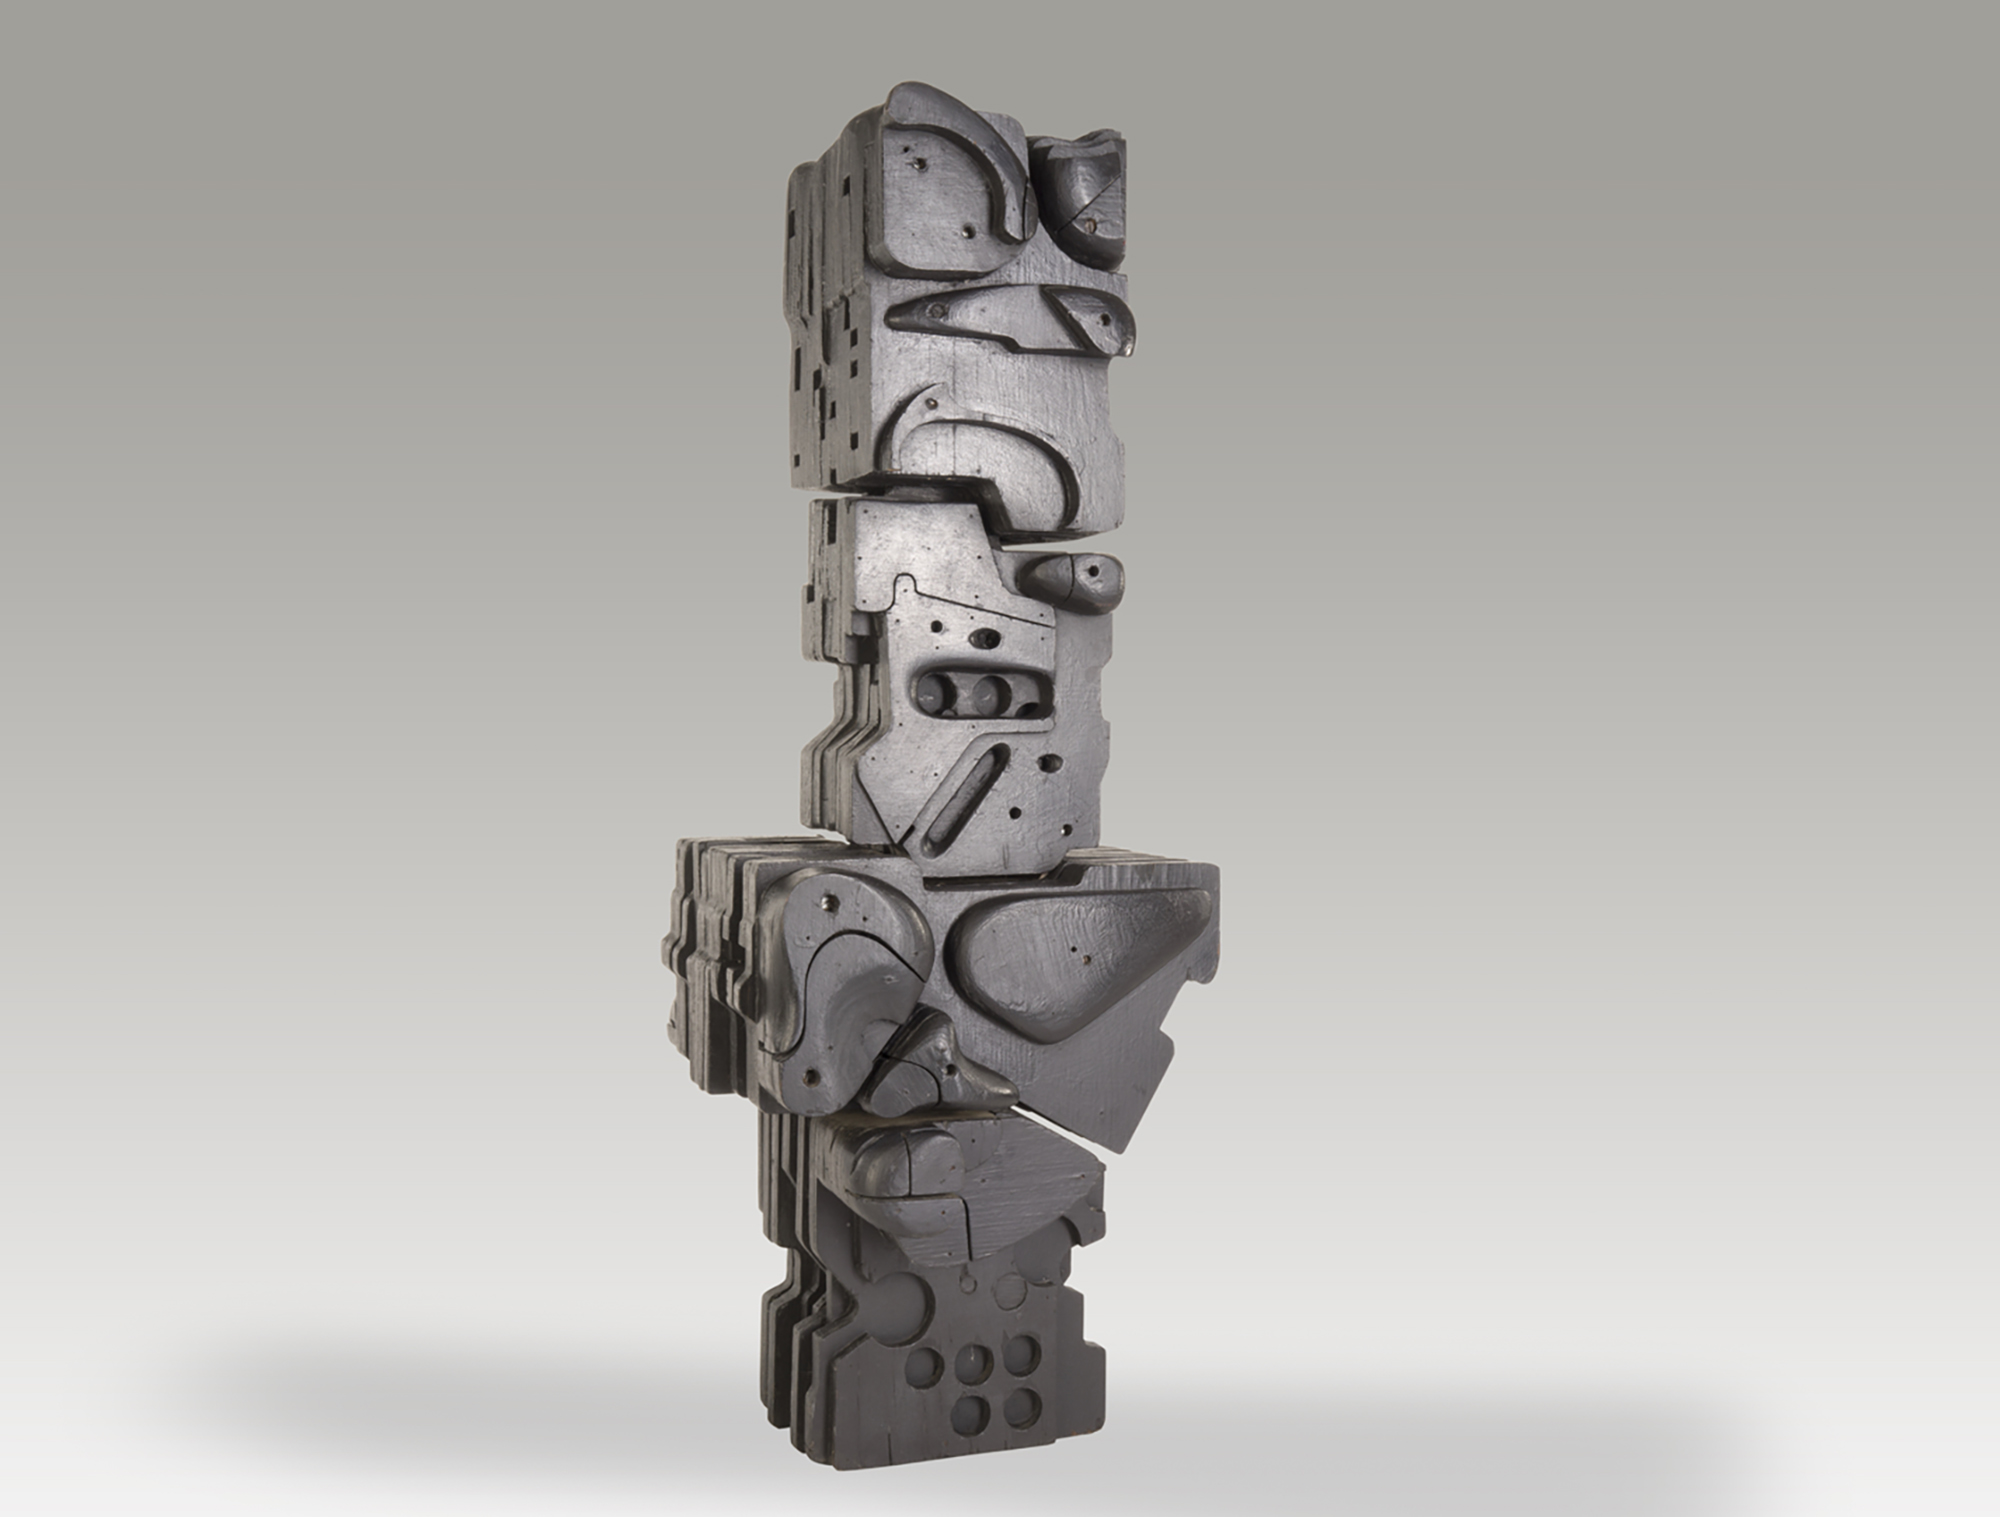 Totem,   1964, Acrylic on wood, 42 x 16 x 15 inches